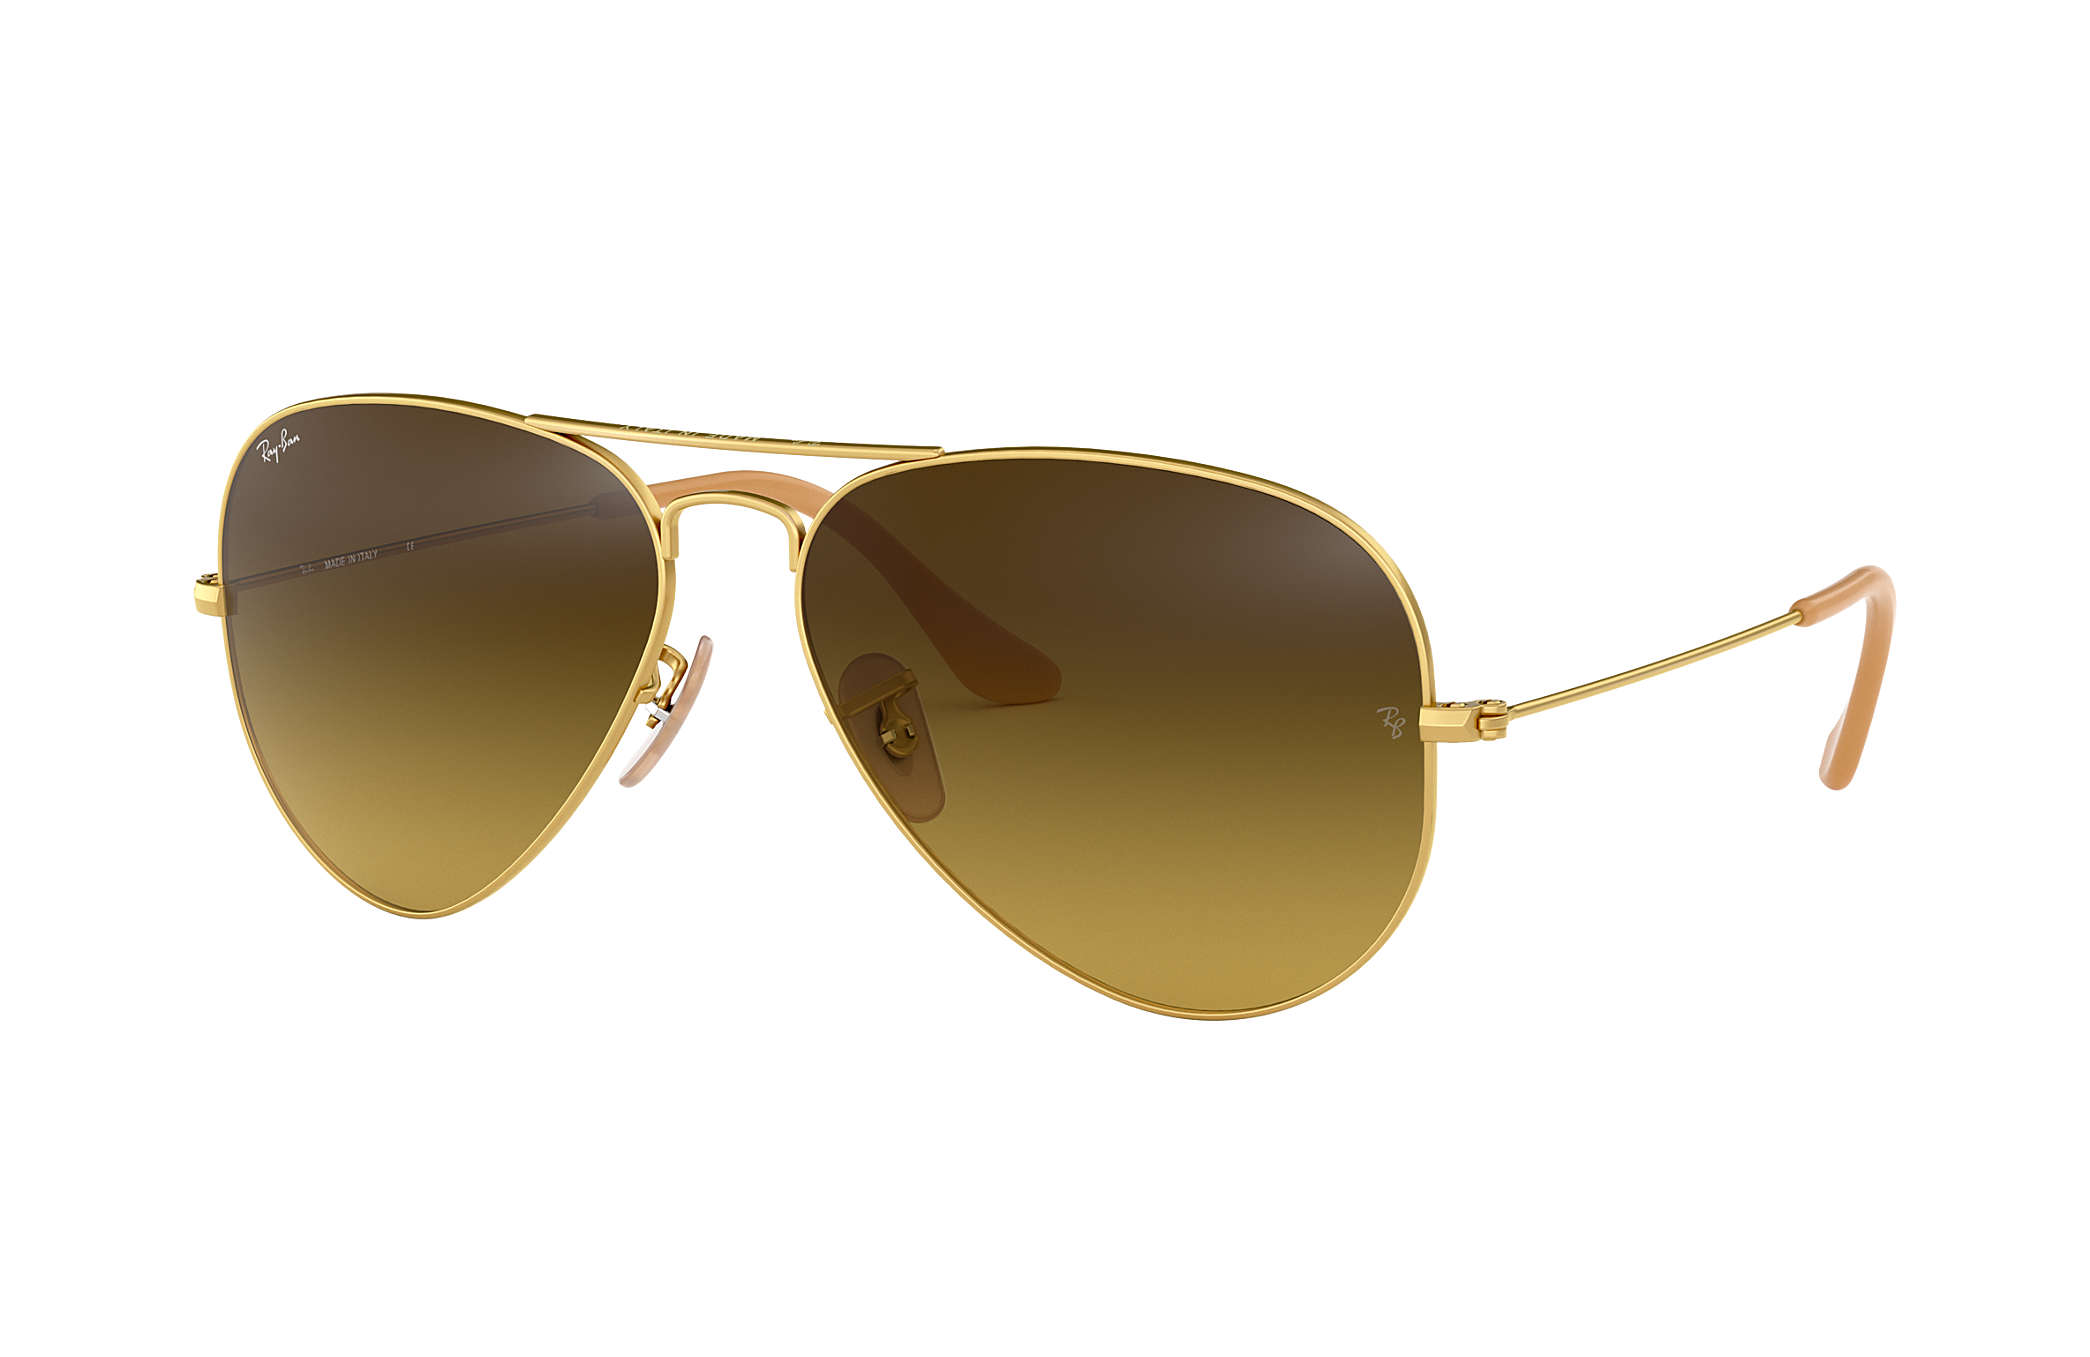 6e700b5d2c7 Ray-Ban Aviator Gradient RB3025 Gold - Metal - Brown Lenses ...